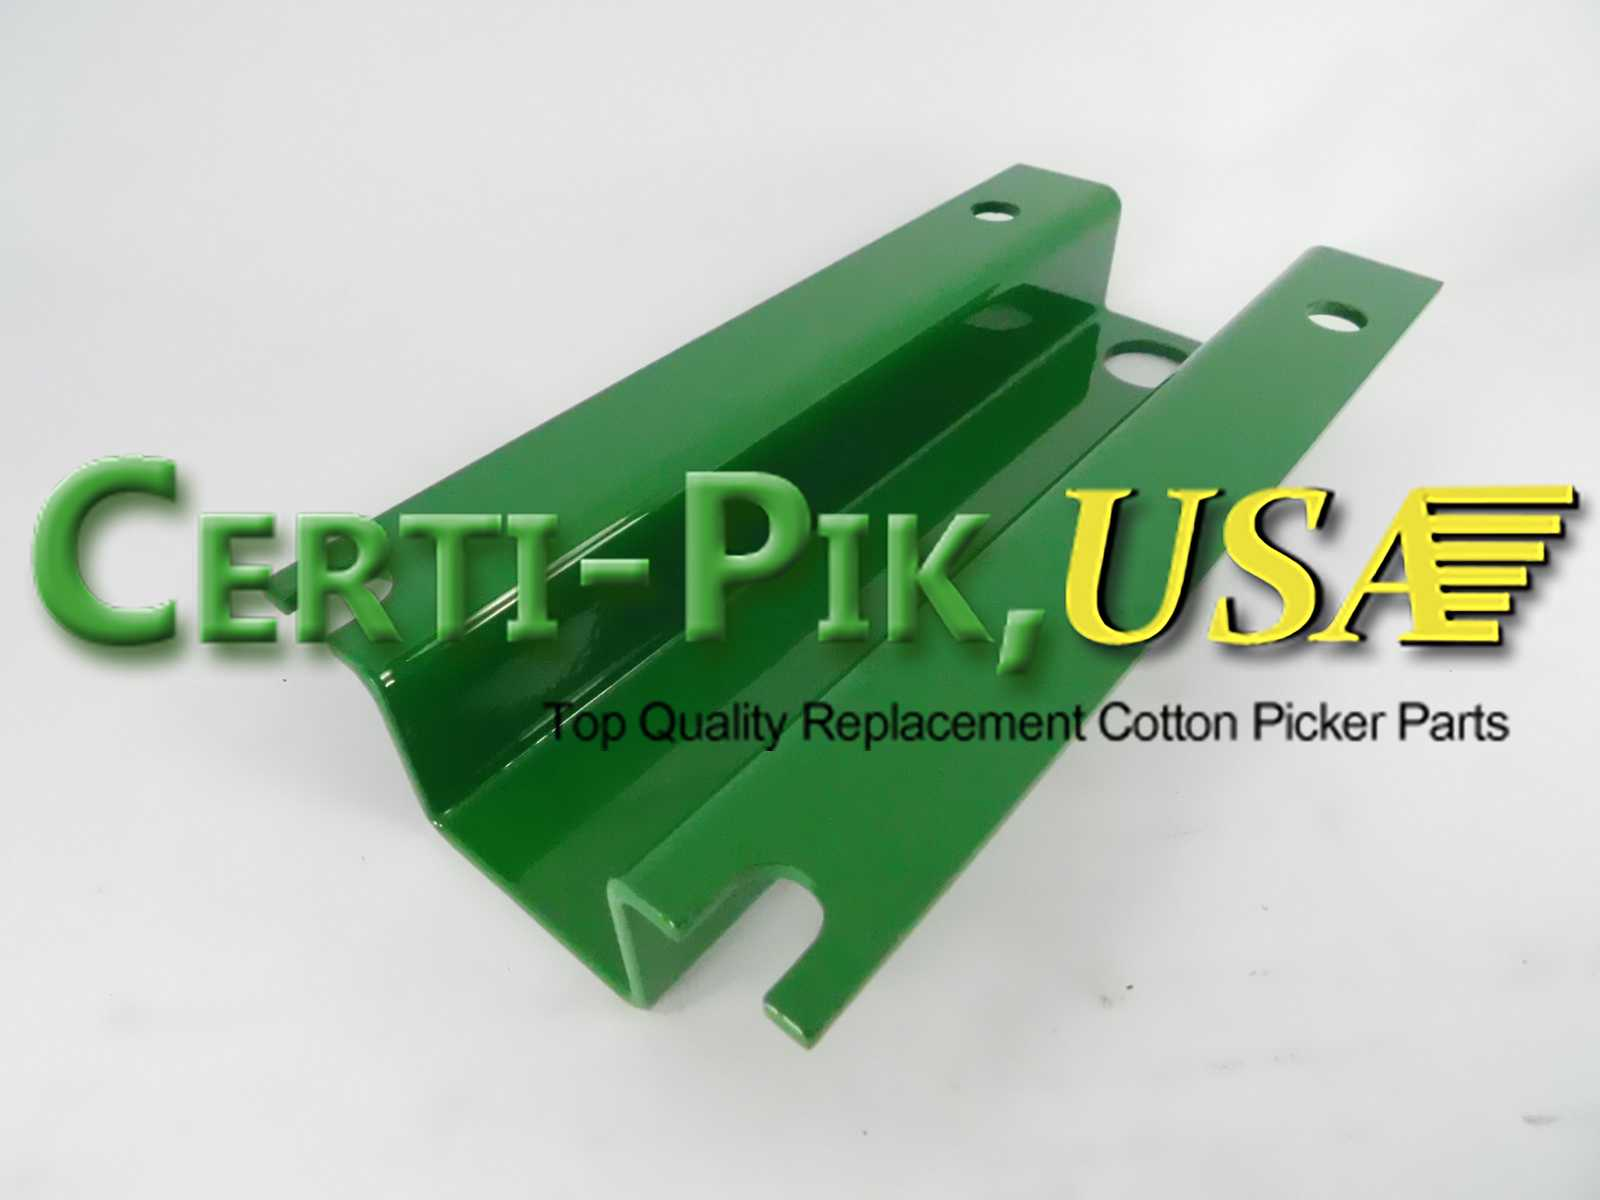 Picking Unit Cabinet: John Deere 9976-CP690 Upper Cabinet N406766 (06766) for Sale